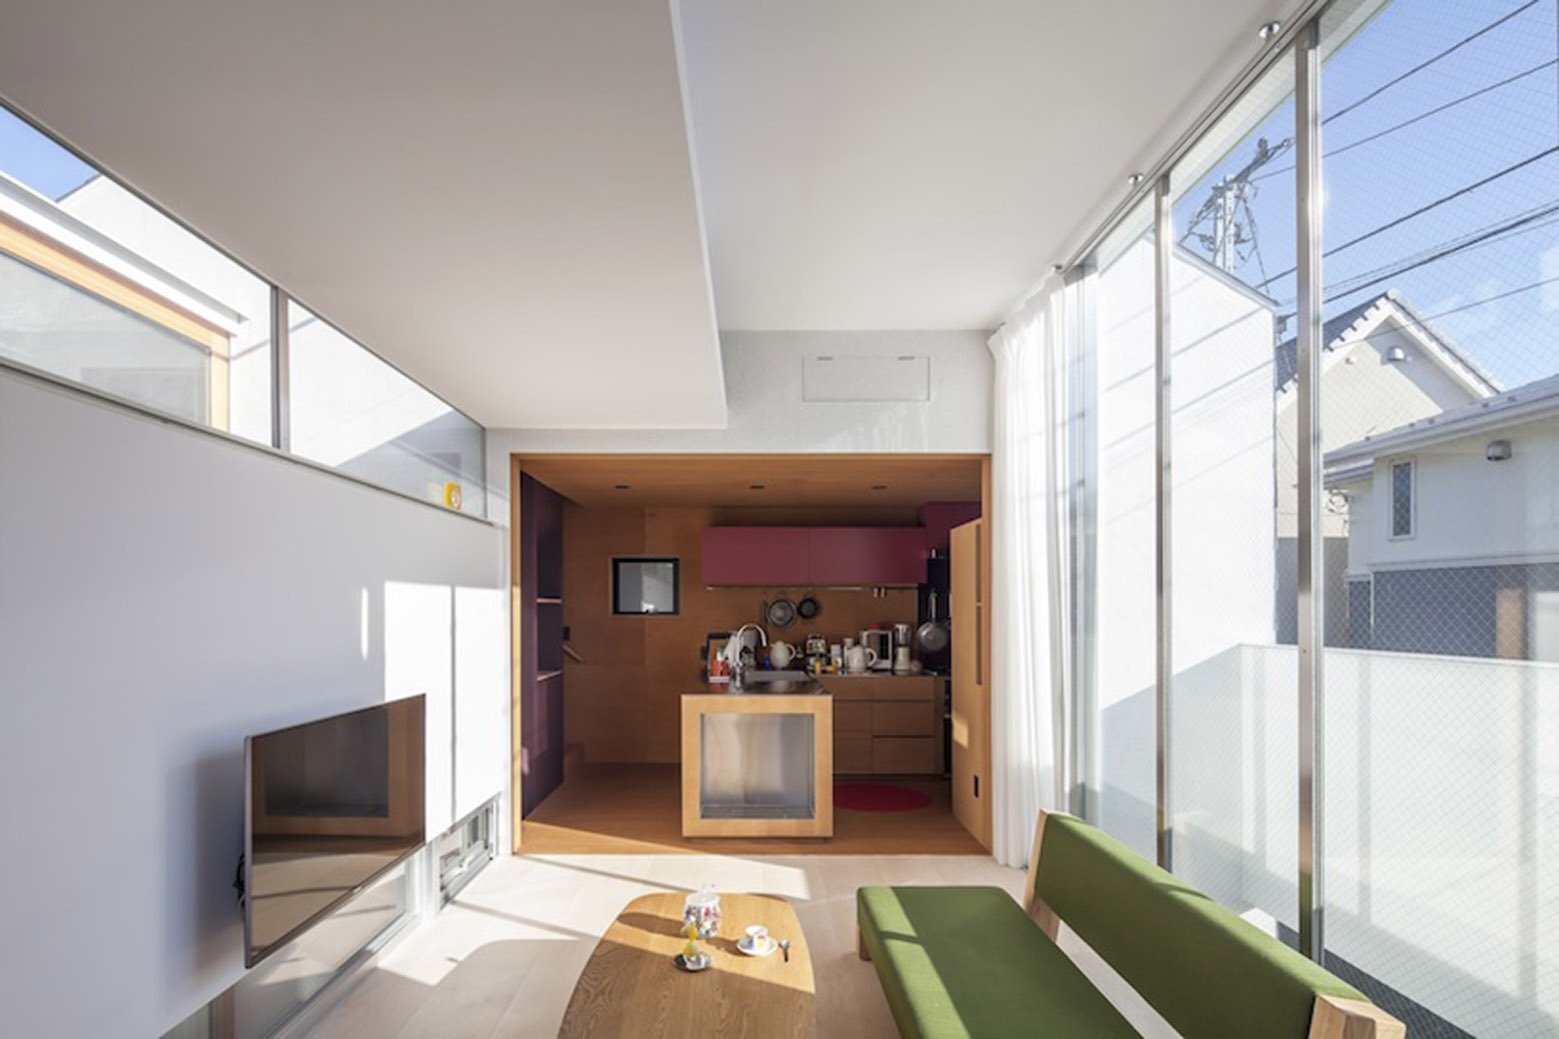 sepa small house s shintaro matsushita takashi suzuk japan living room - Small House Living